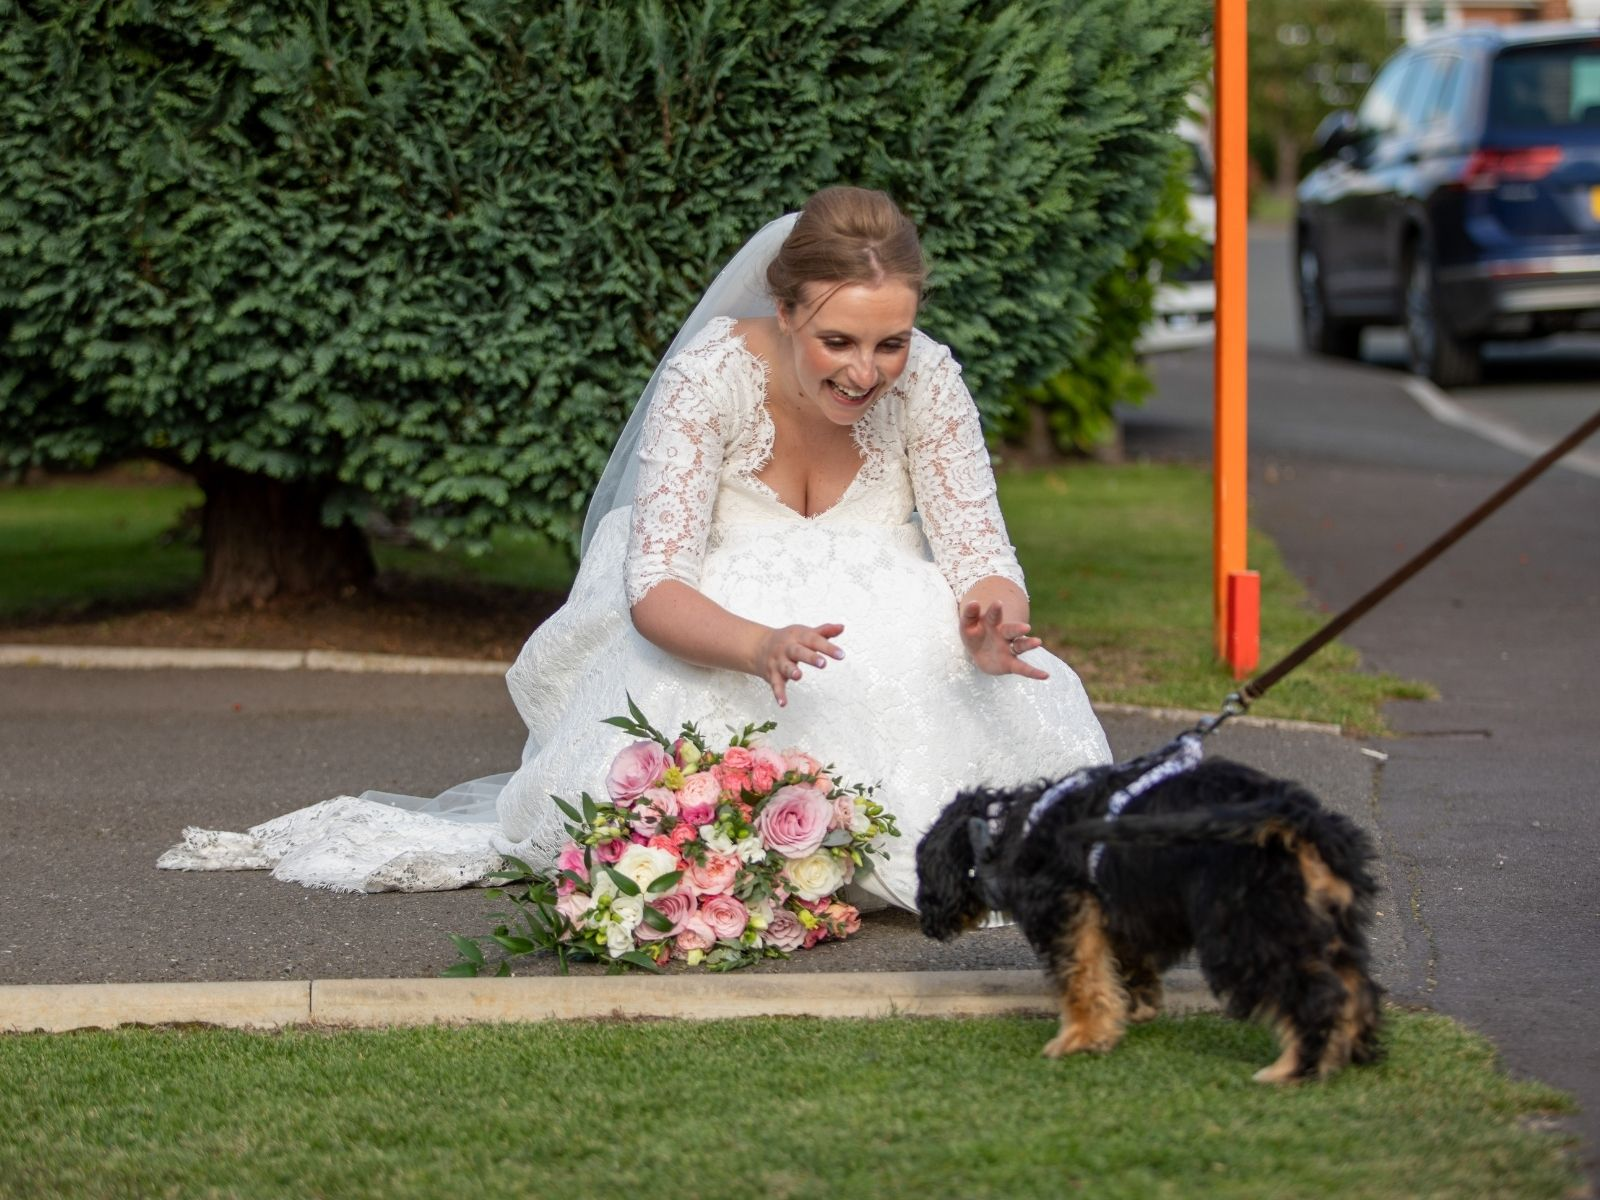 Wedding photography with pets